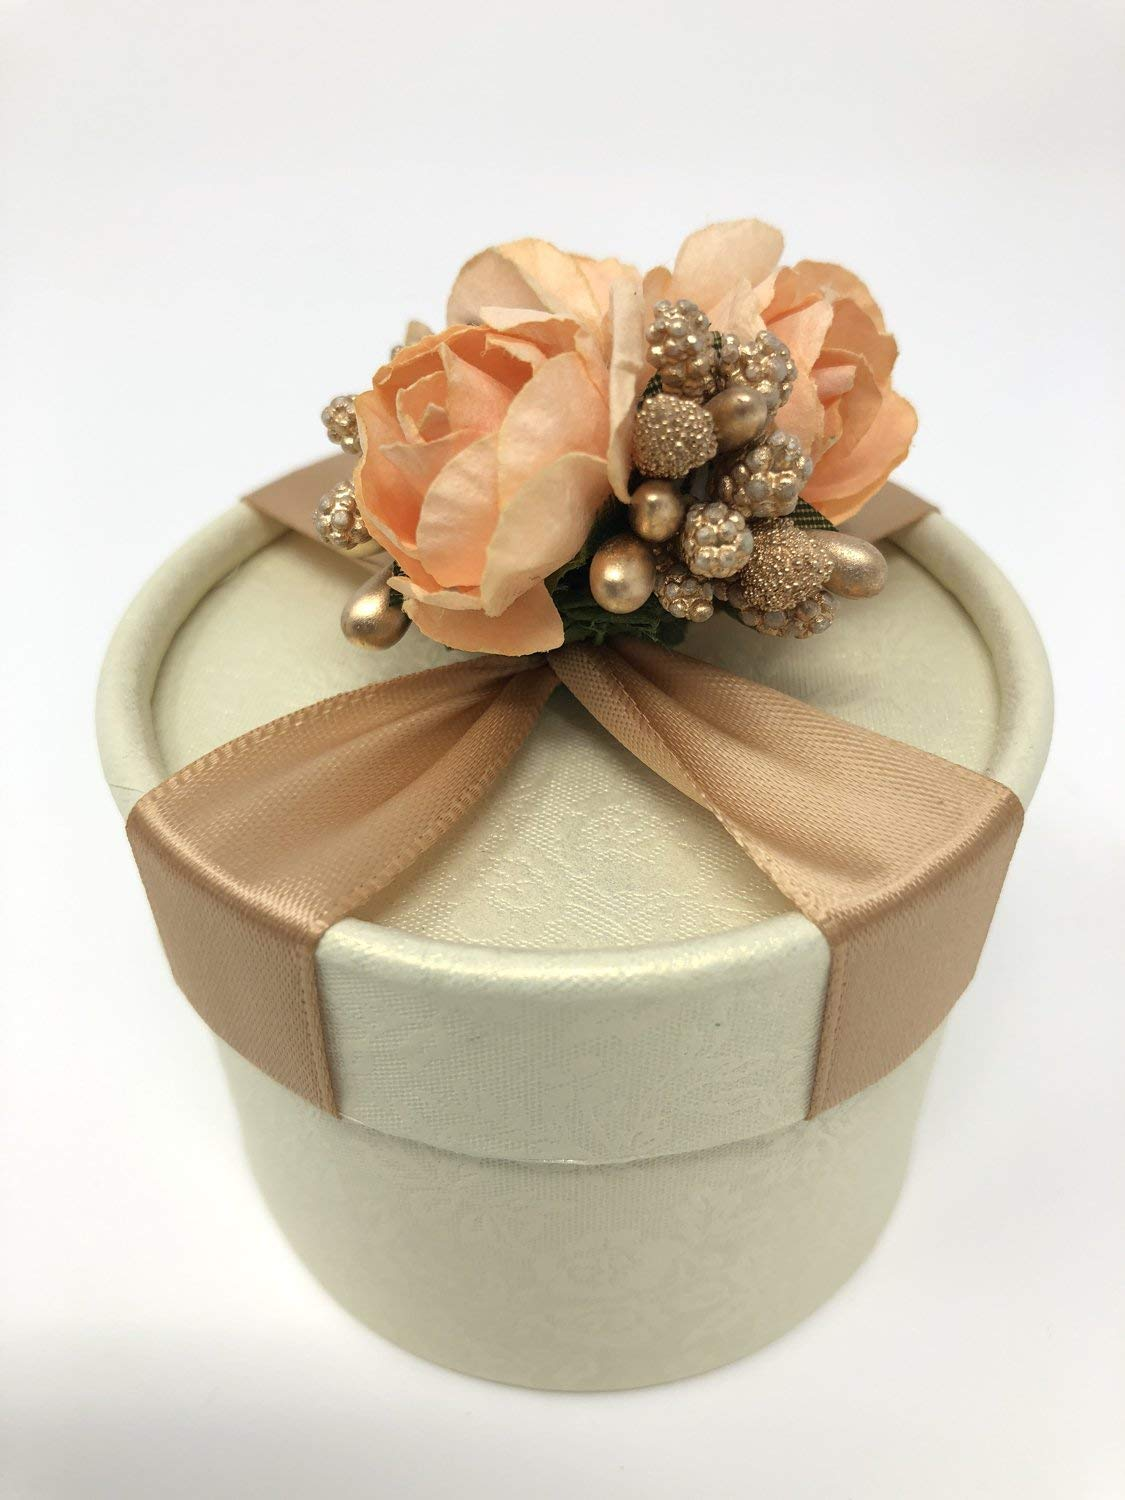 Cheap Gift Box Ideas For Weddings Find Gift Box Ideas For Weddings